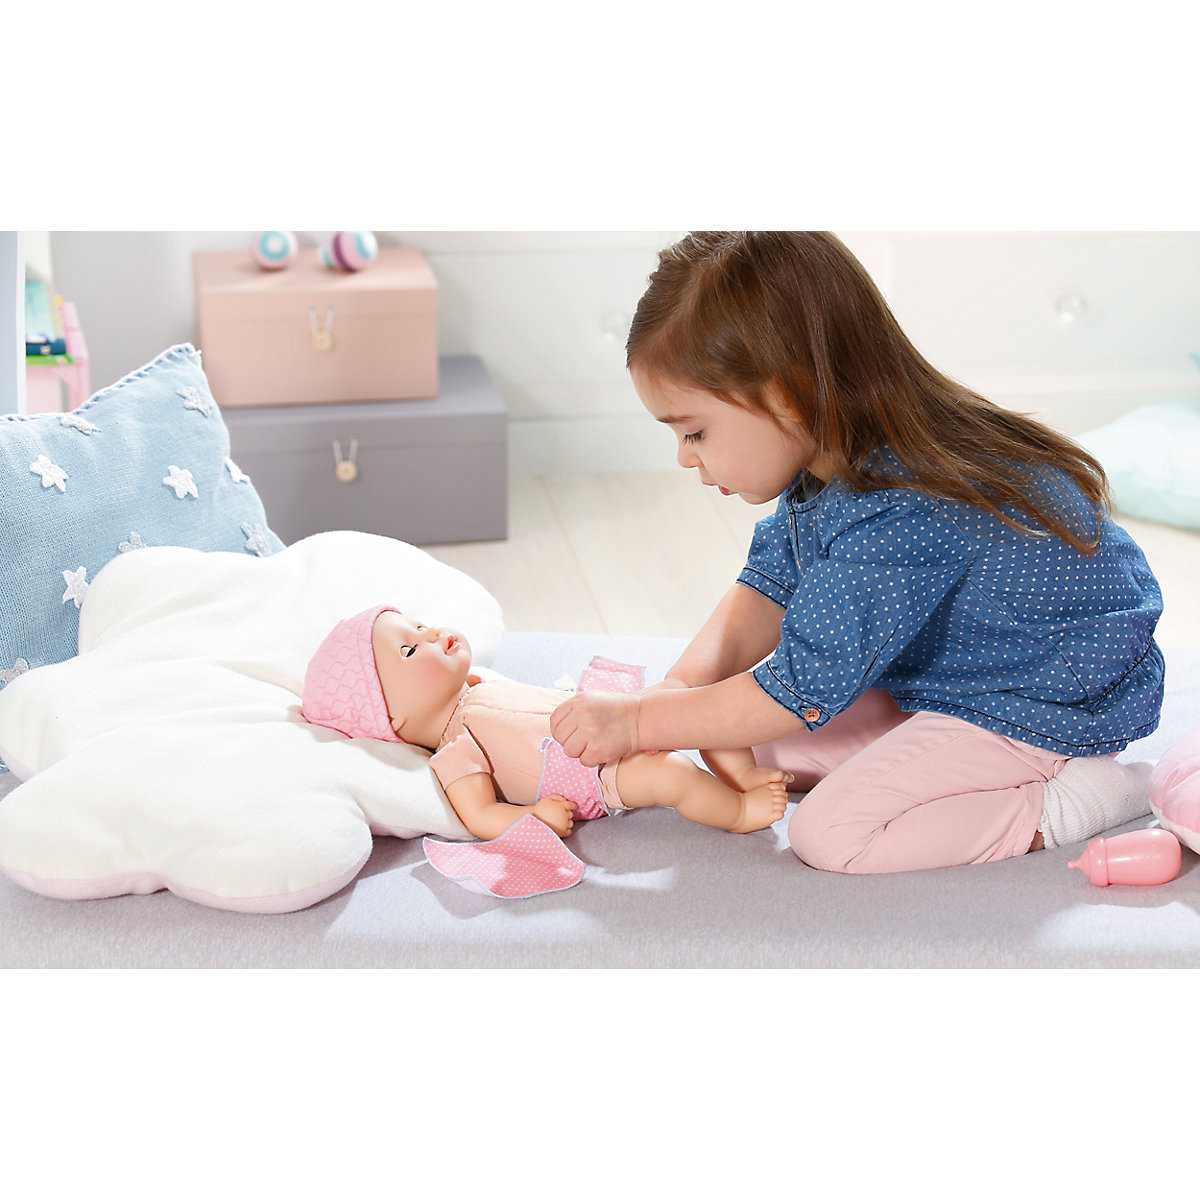 Baby Annabell Baby Fun Babypuppe, 36cm, Baby Annabell ...